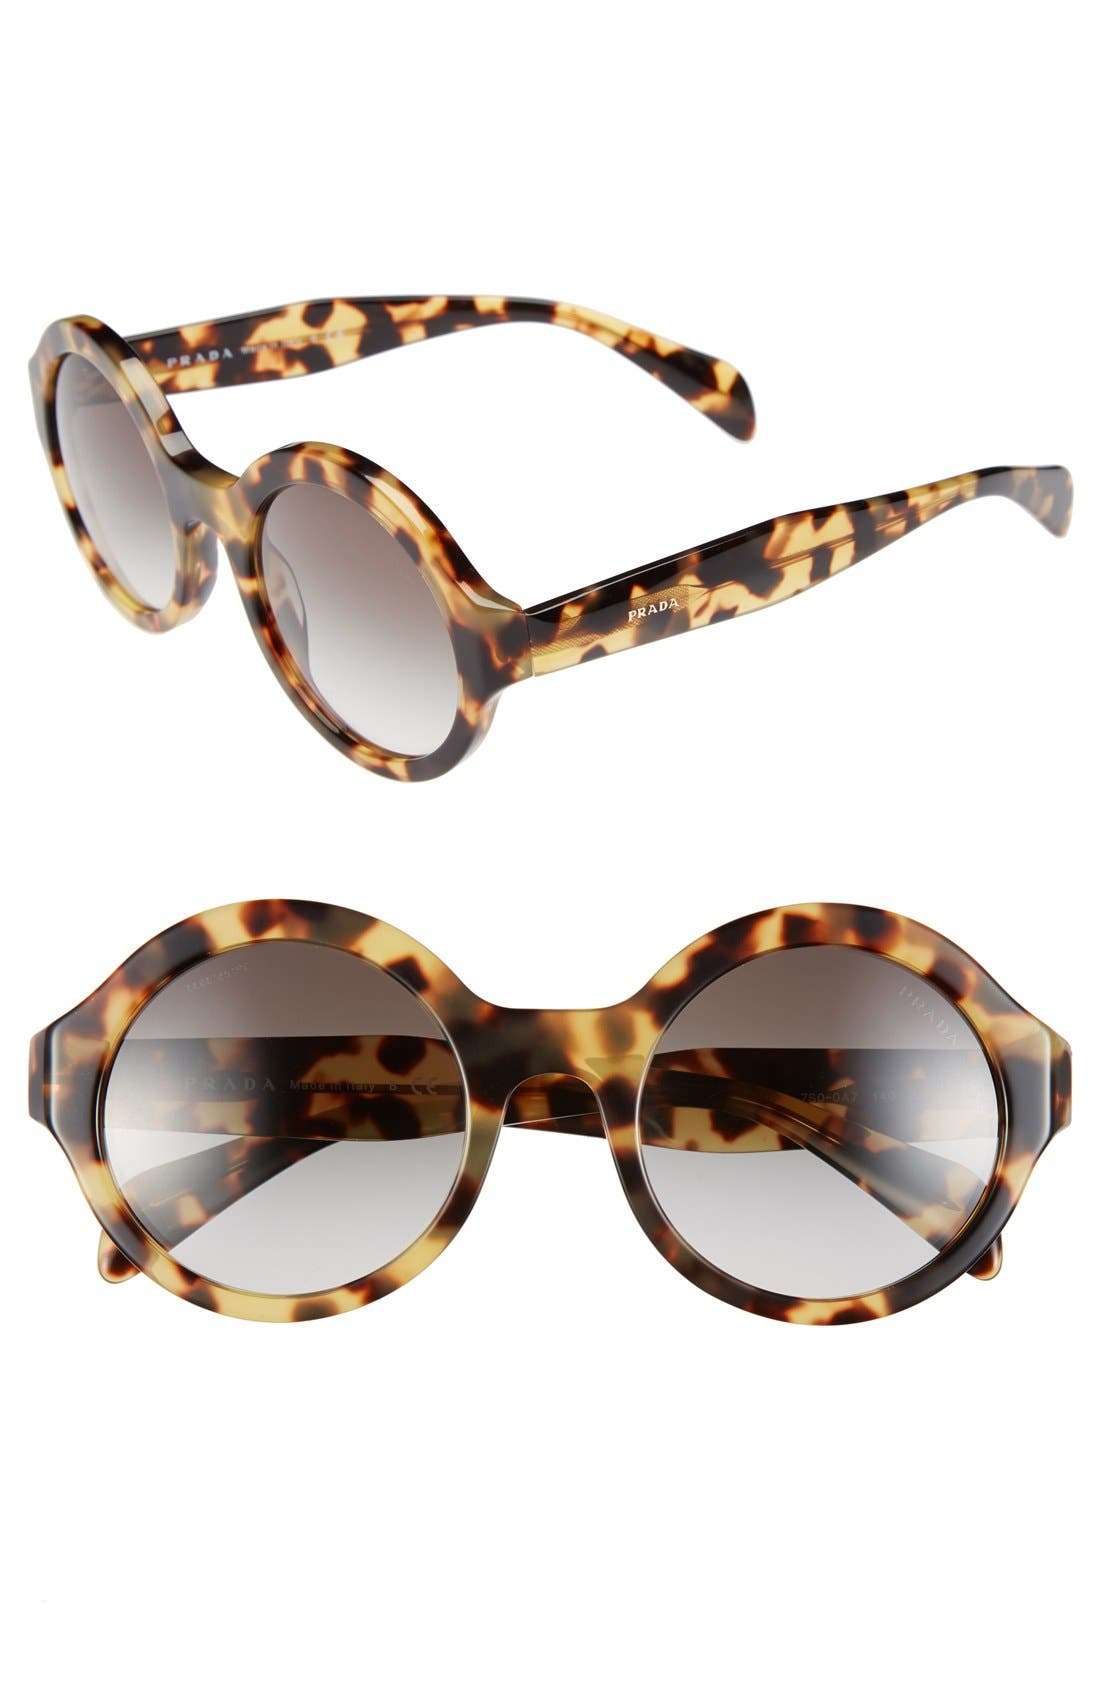 Alternate Image 1 Selected - Prada 51mm Round Sunglasses